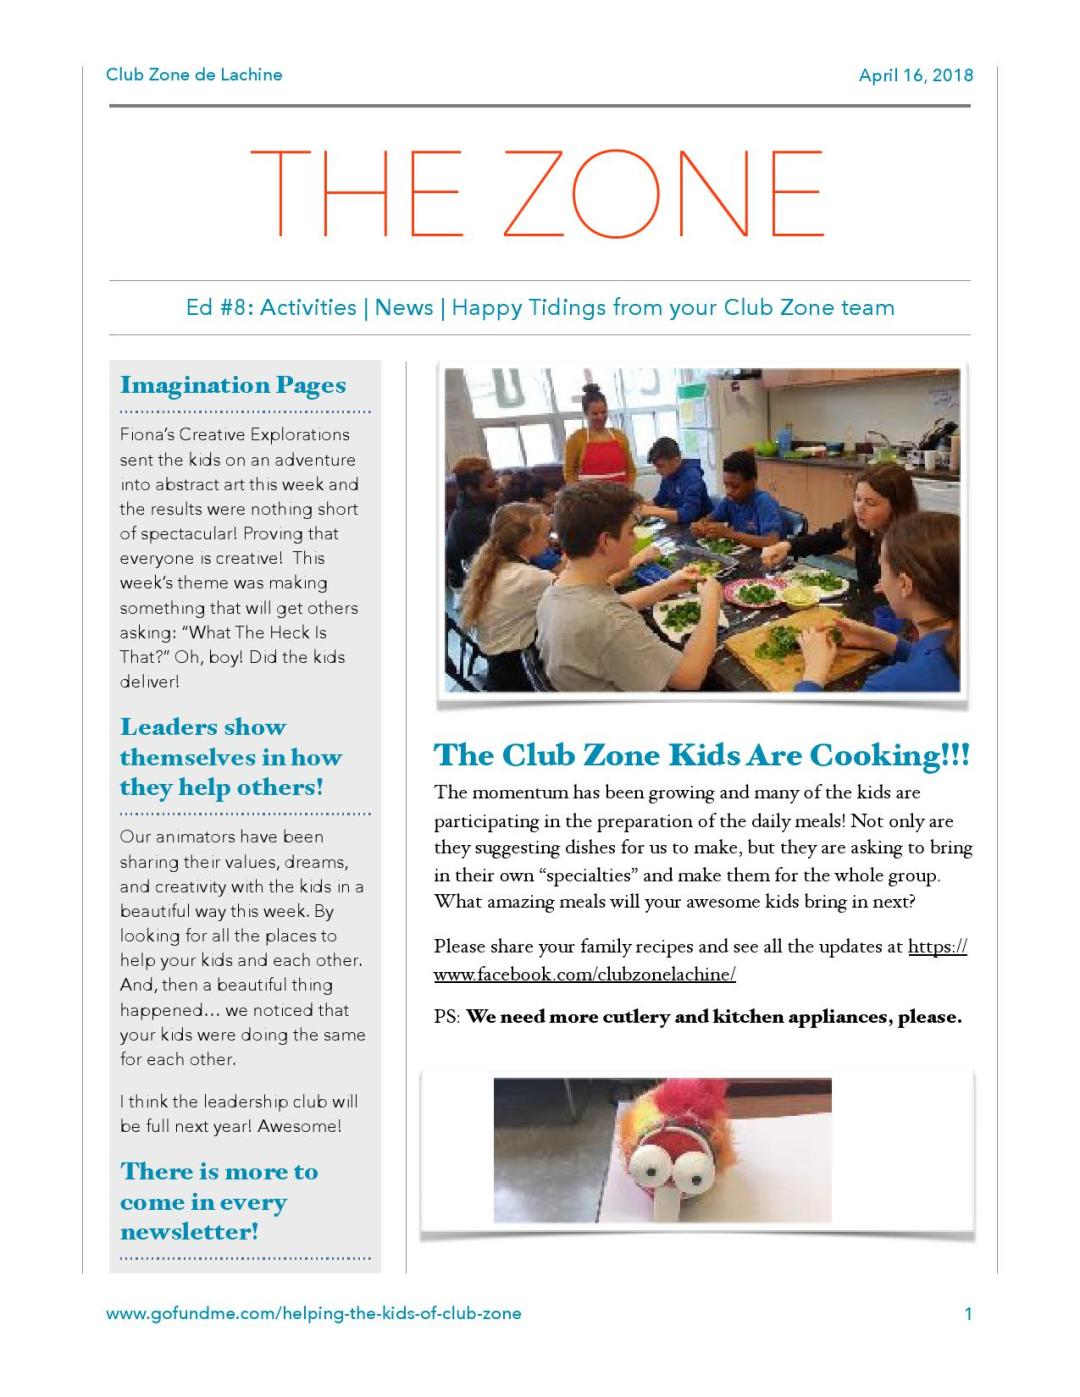 Club Zone Newsletter 2018-04-16_1